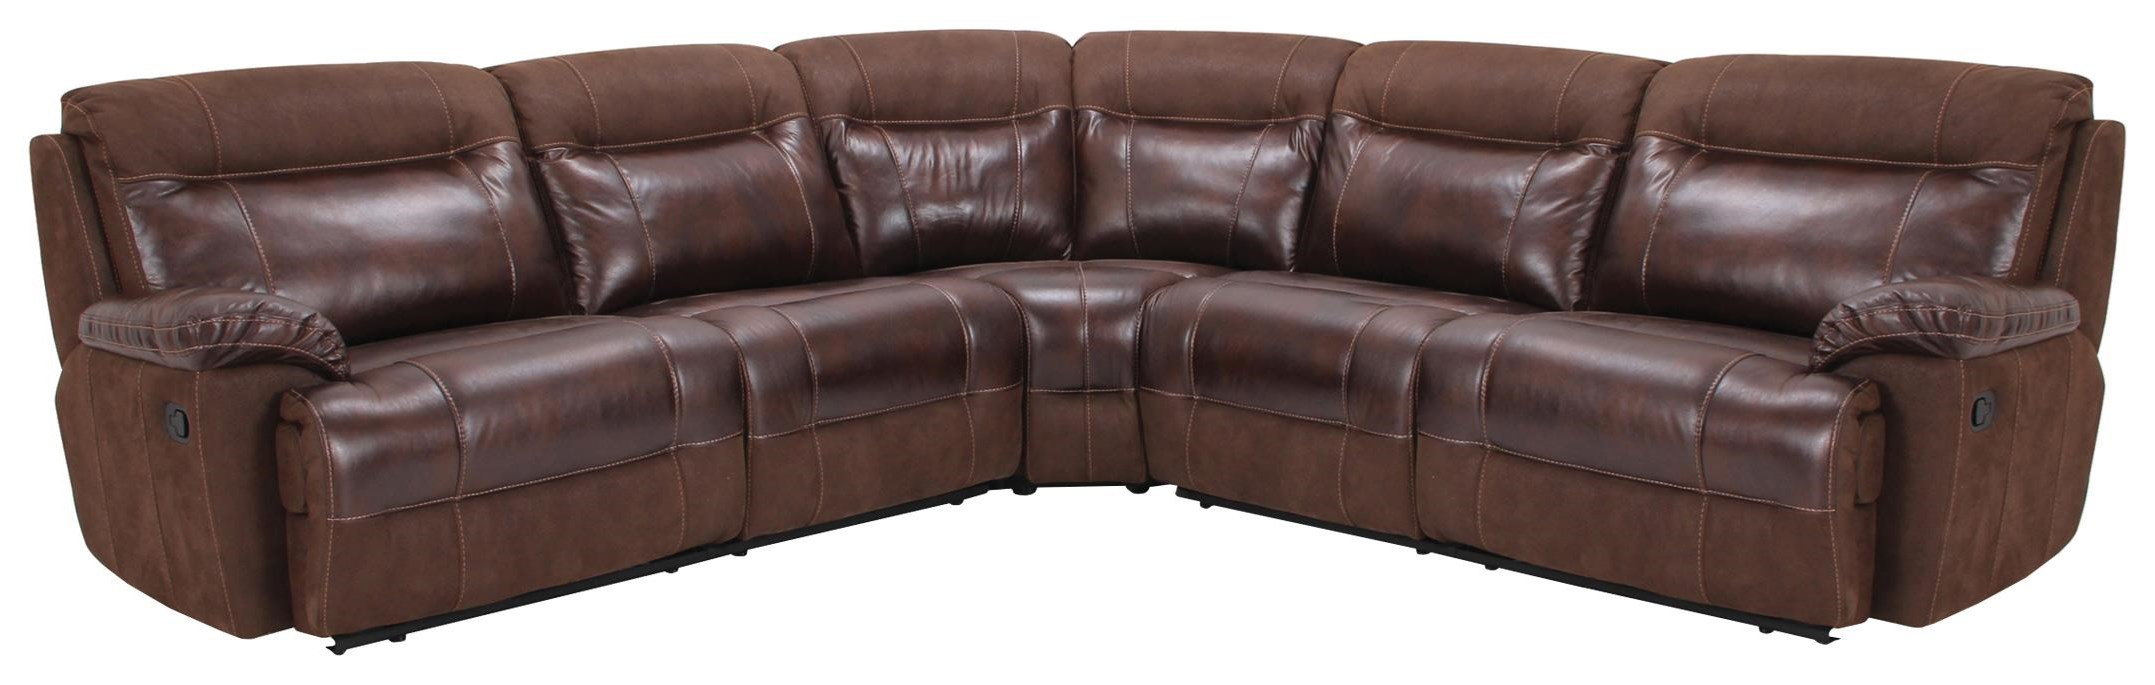 Reclining Sectional at Sadler's Home Furnishings